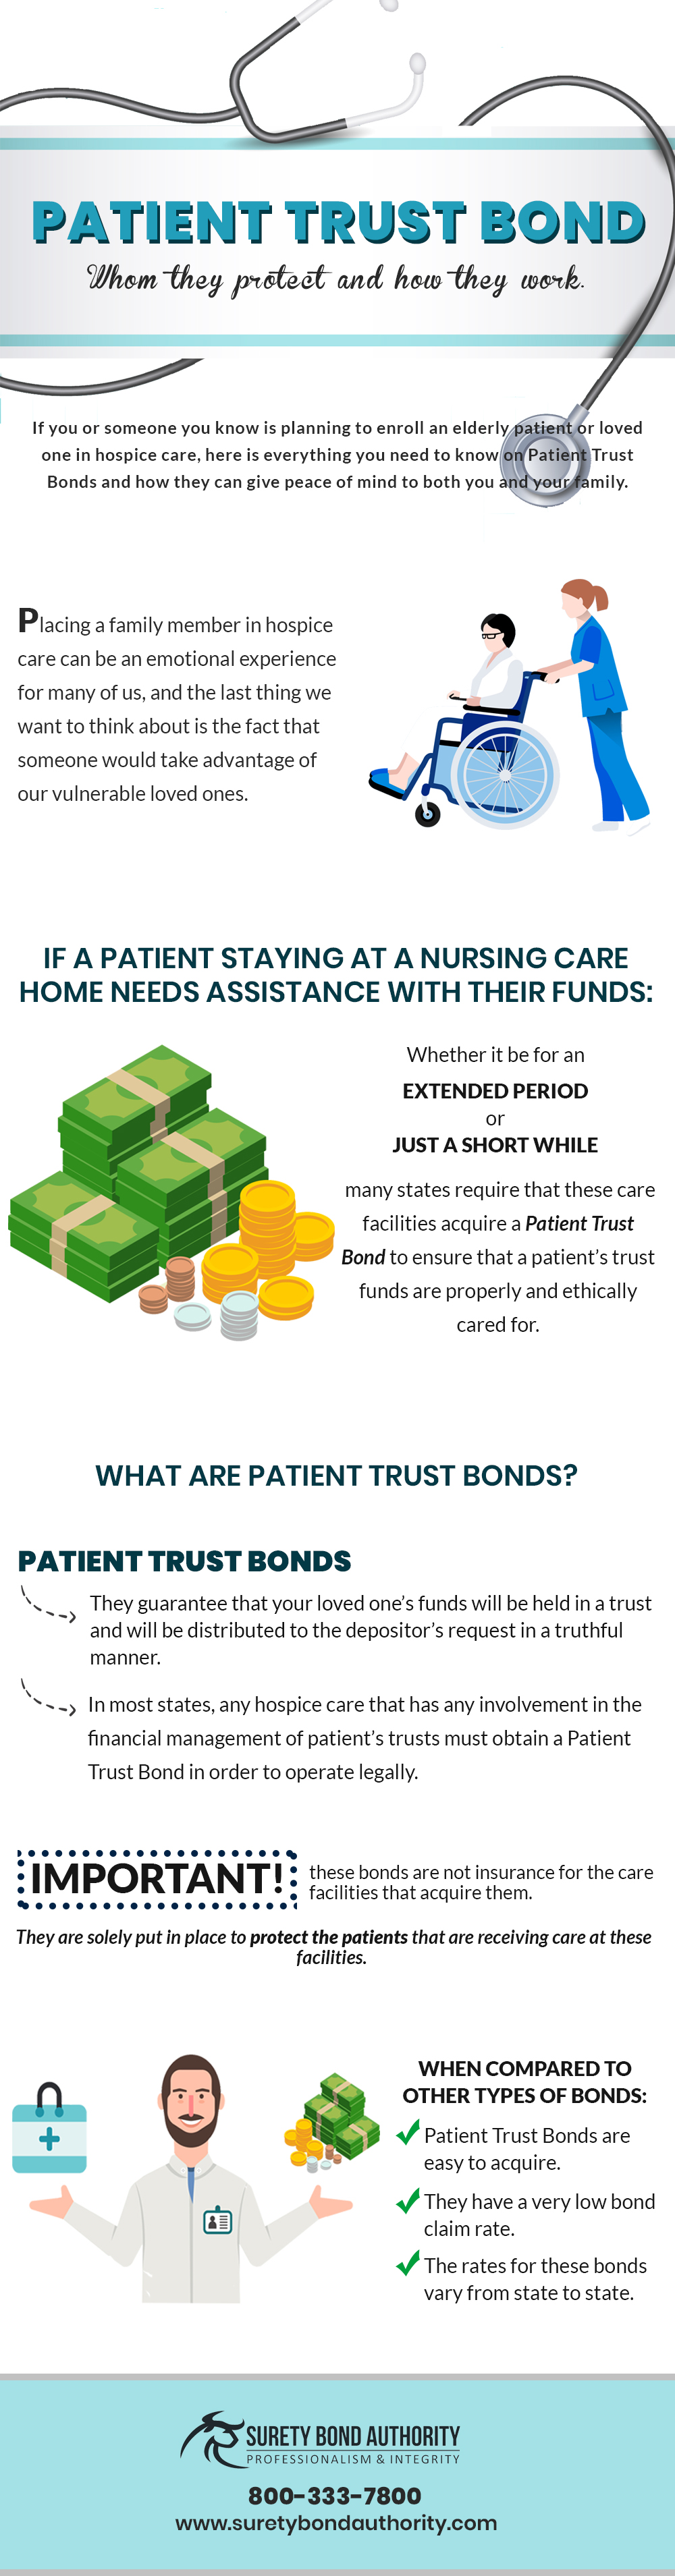 Patient Trust Bond Infographic